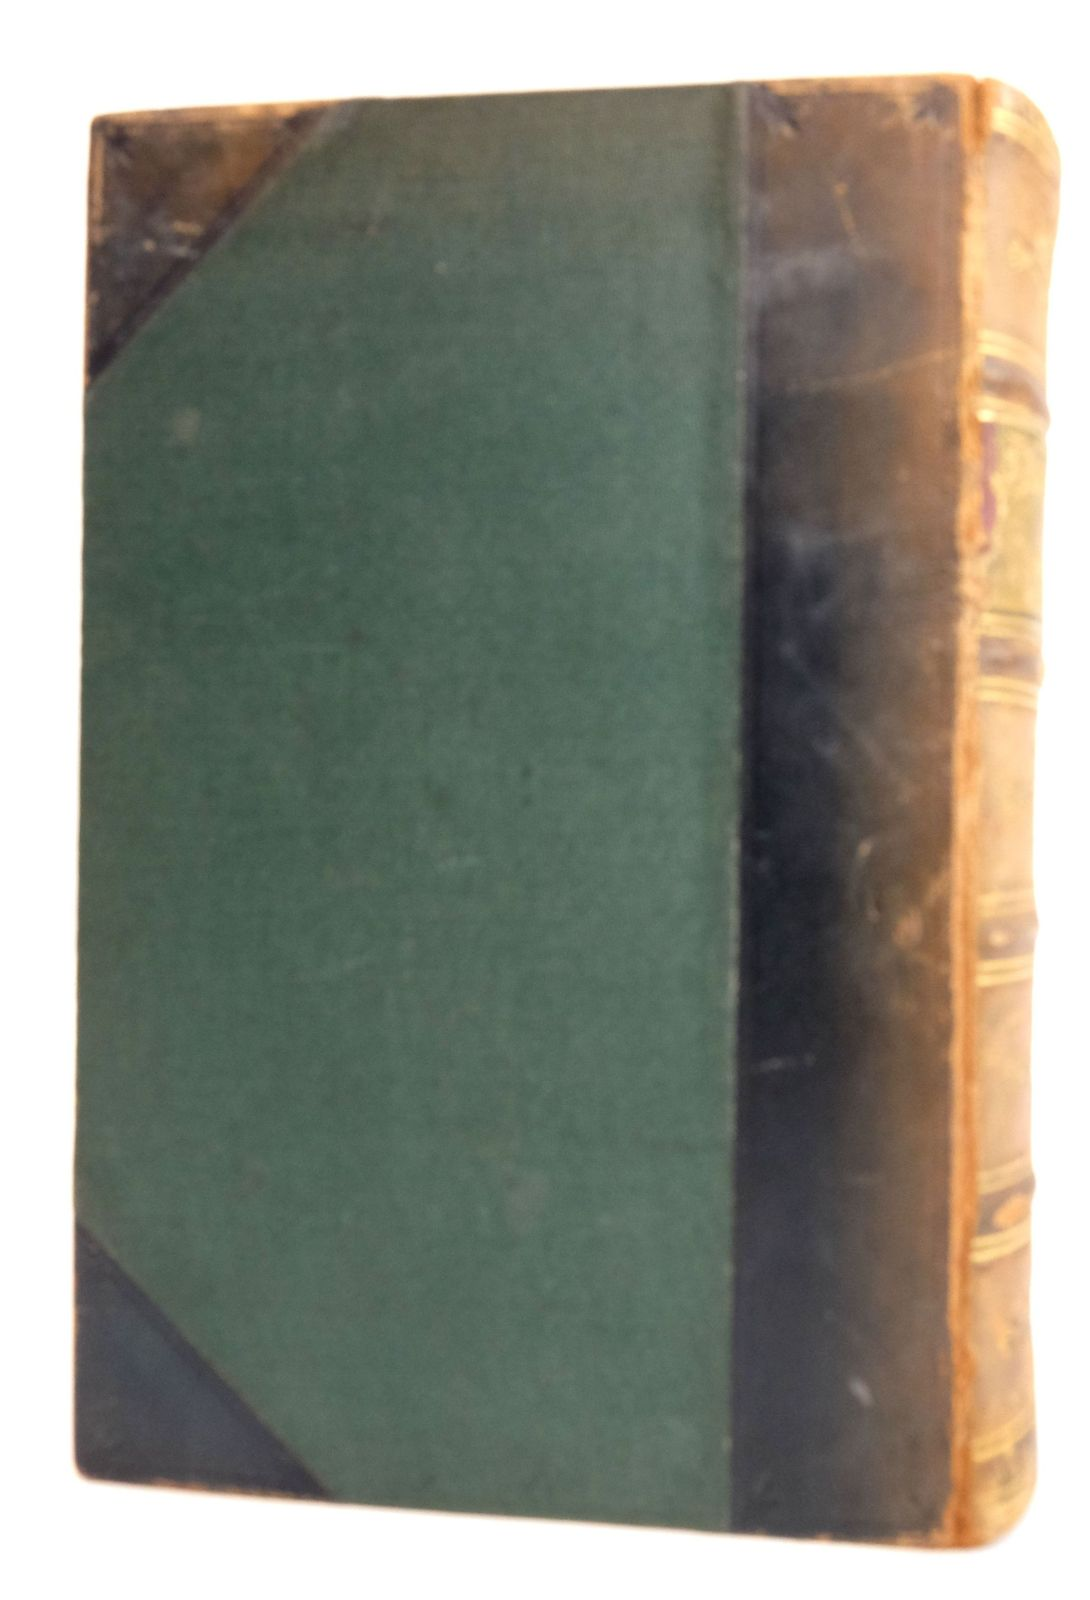 Photo of ARROWSMITH'S DICTIONARY OF BRISTOL published by J.W. Arrowsmith (STOCK CODE: 1819650)  for sale by Stella & Rose's Books